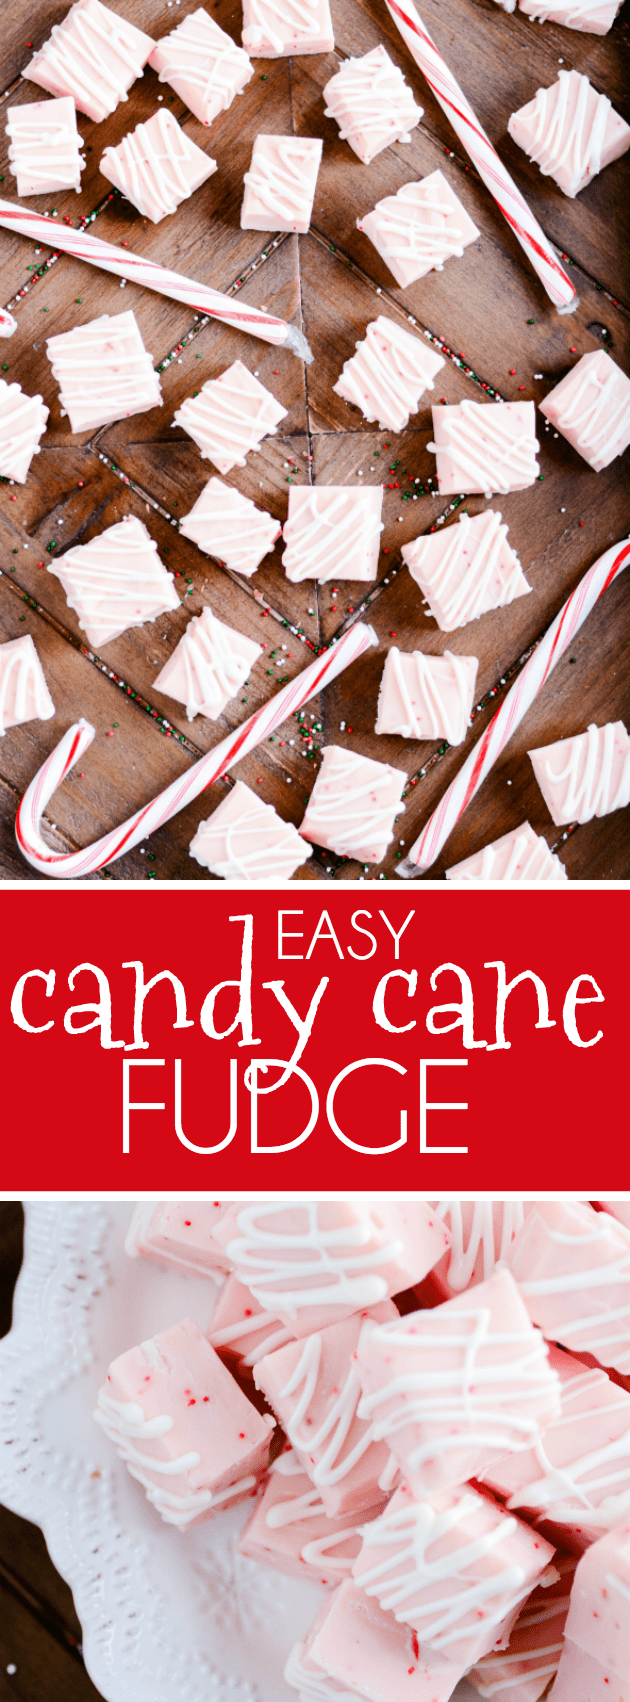 You only need a few simple ingredients to make this creamy white chocolate candy cane fudge.